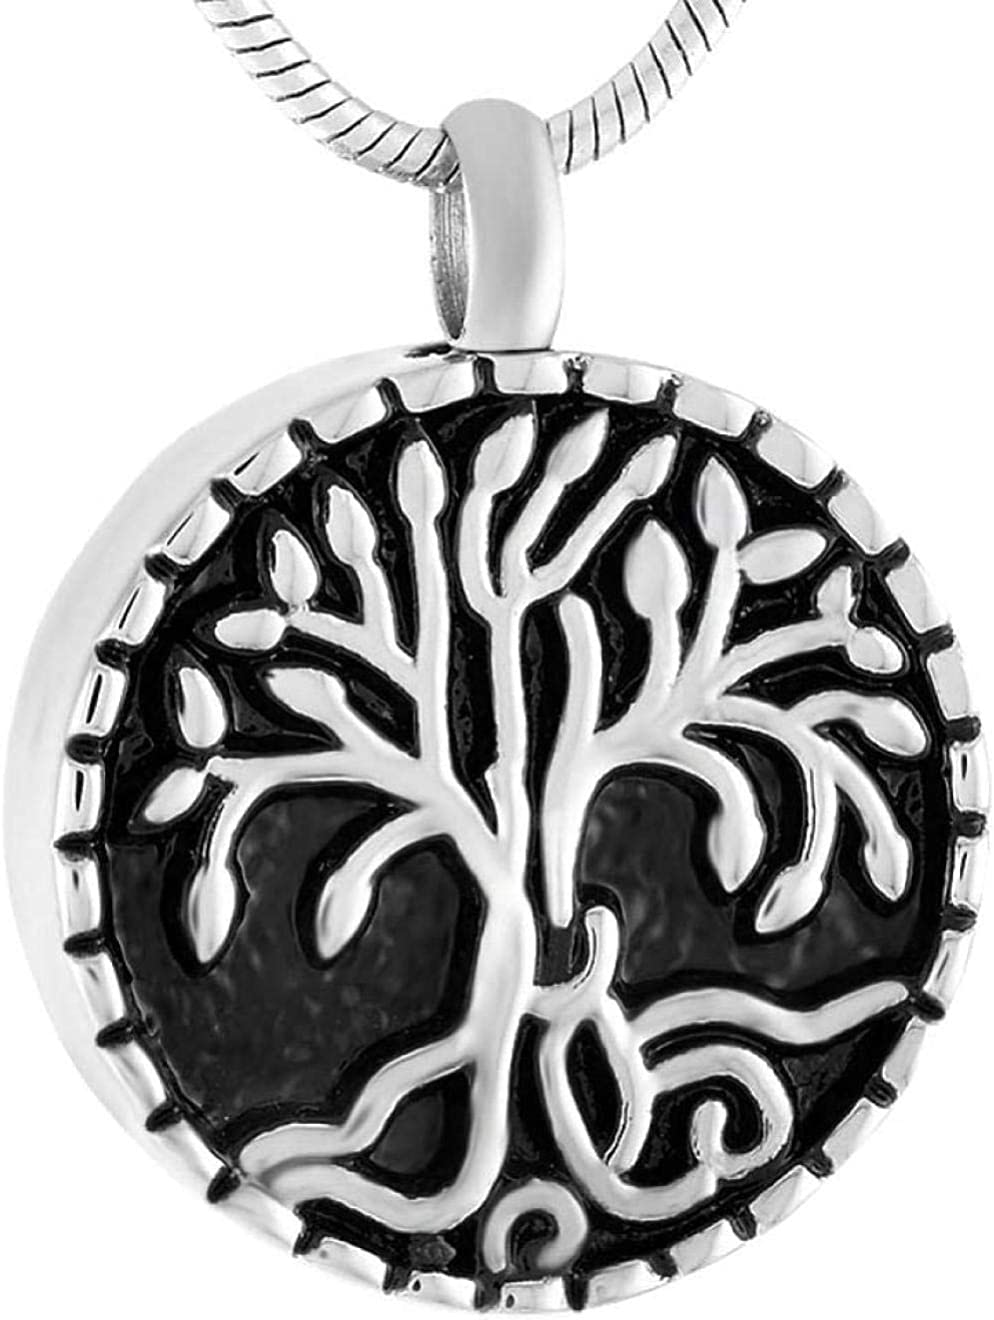 Memorial Jewelry Cremation Jewelry Urn Ashes Memorial Necklace Tree of Life Ashes Souvenir Urn Pendant Necklace Pet/Human Ashes Cute Ashtray Memorial Jewelry Urn Necklace